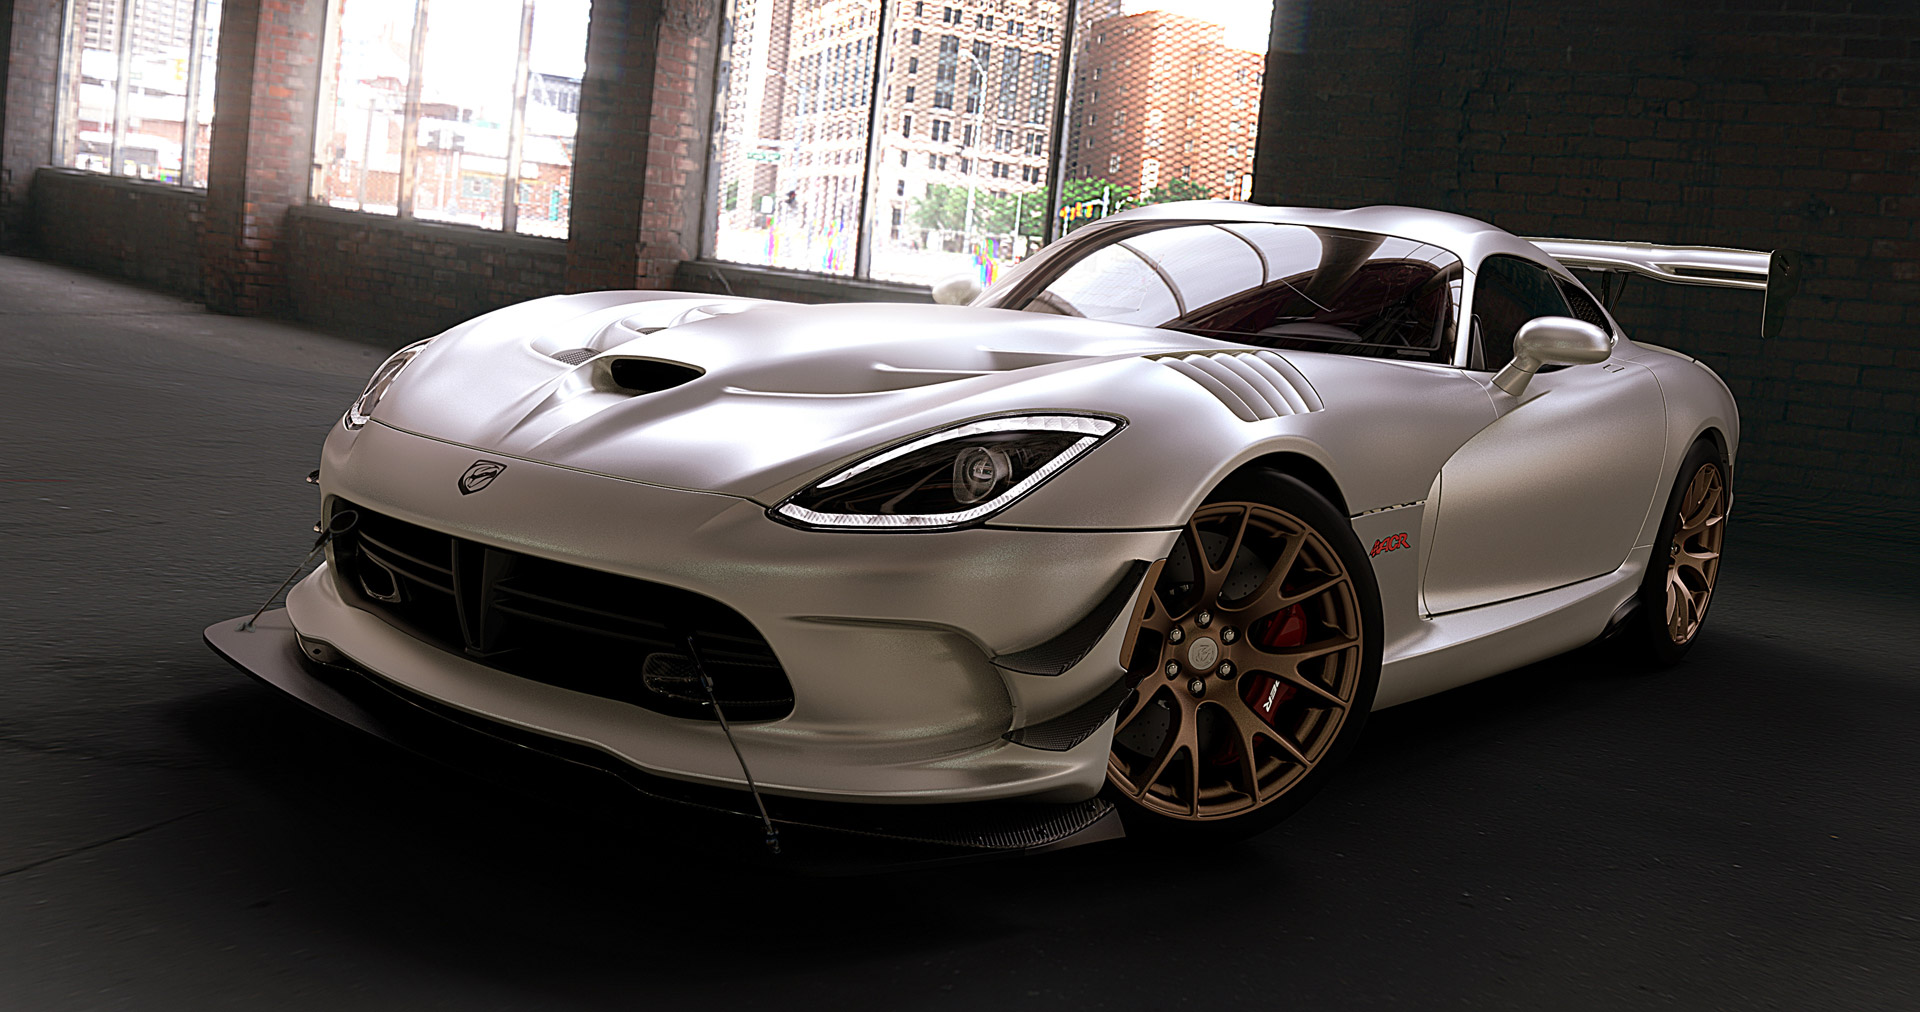 Dodge Viper 1-Of-1 Personalization Program Expanded, Matte Finish Now Available